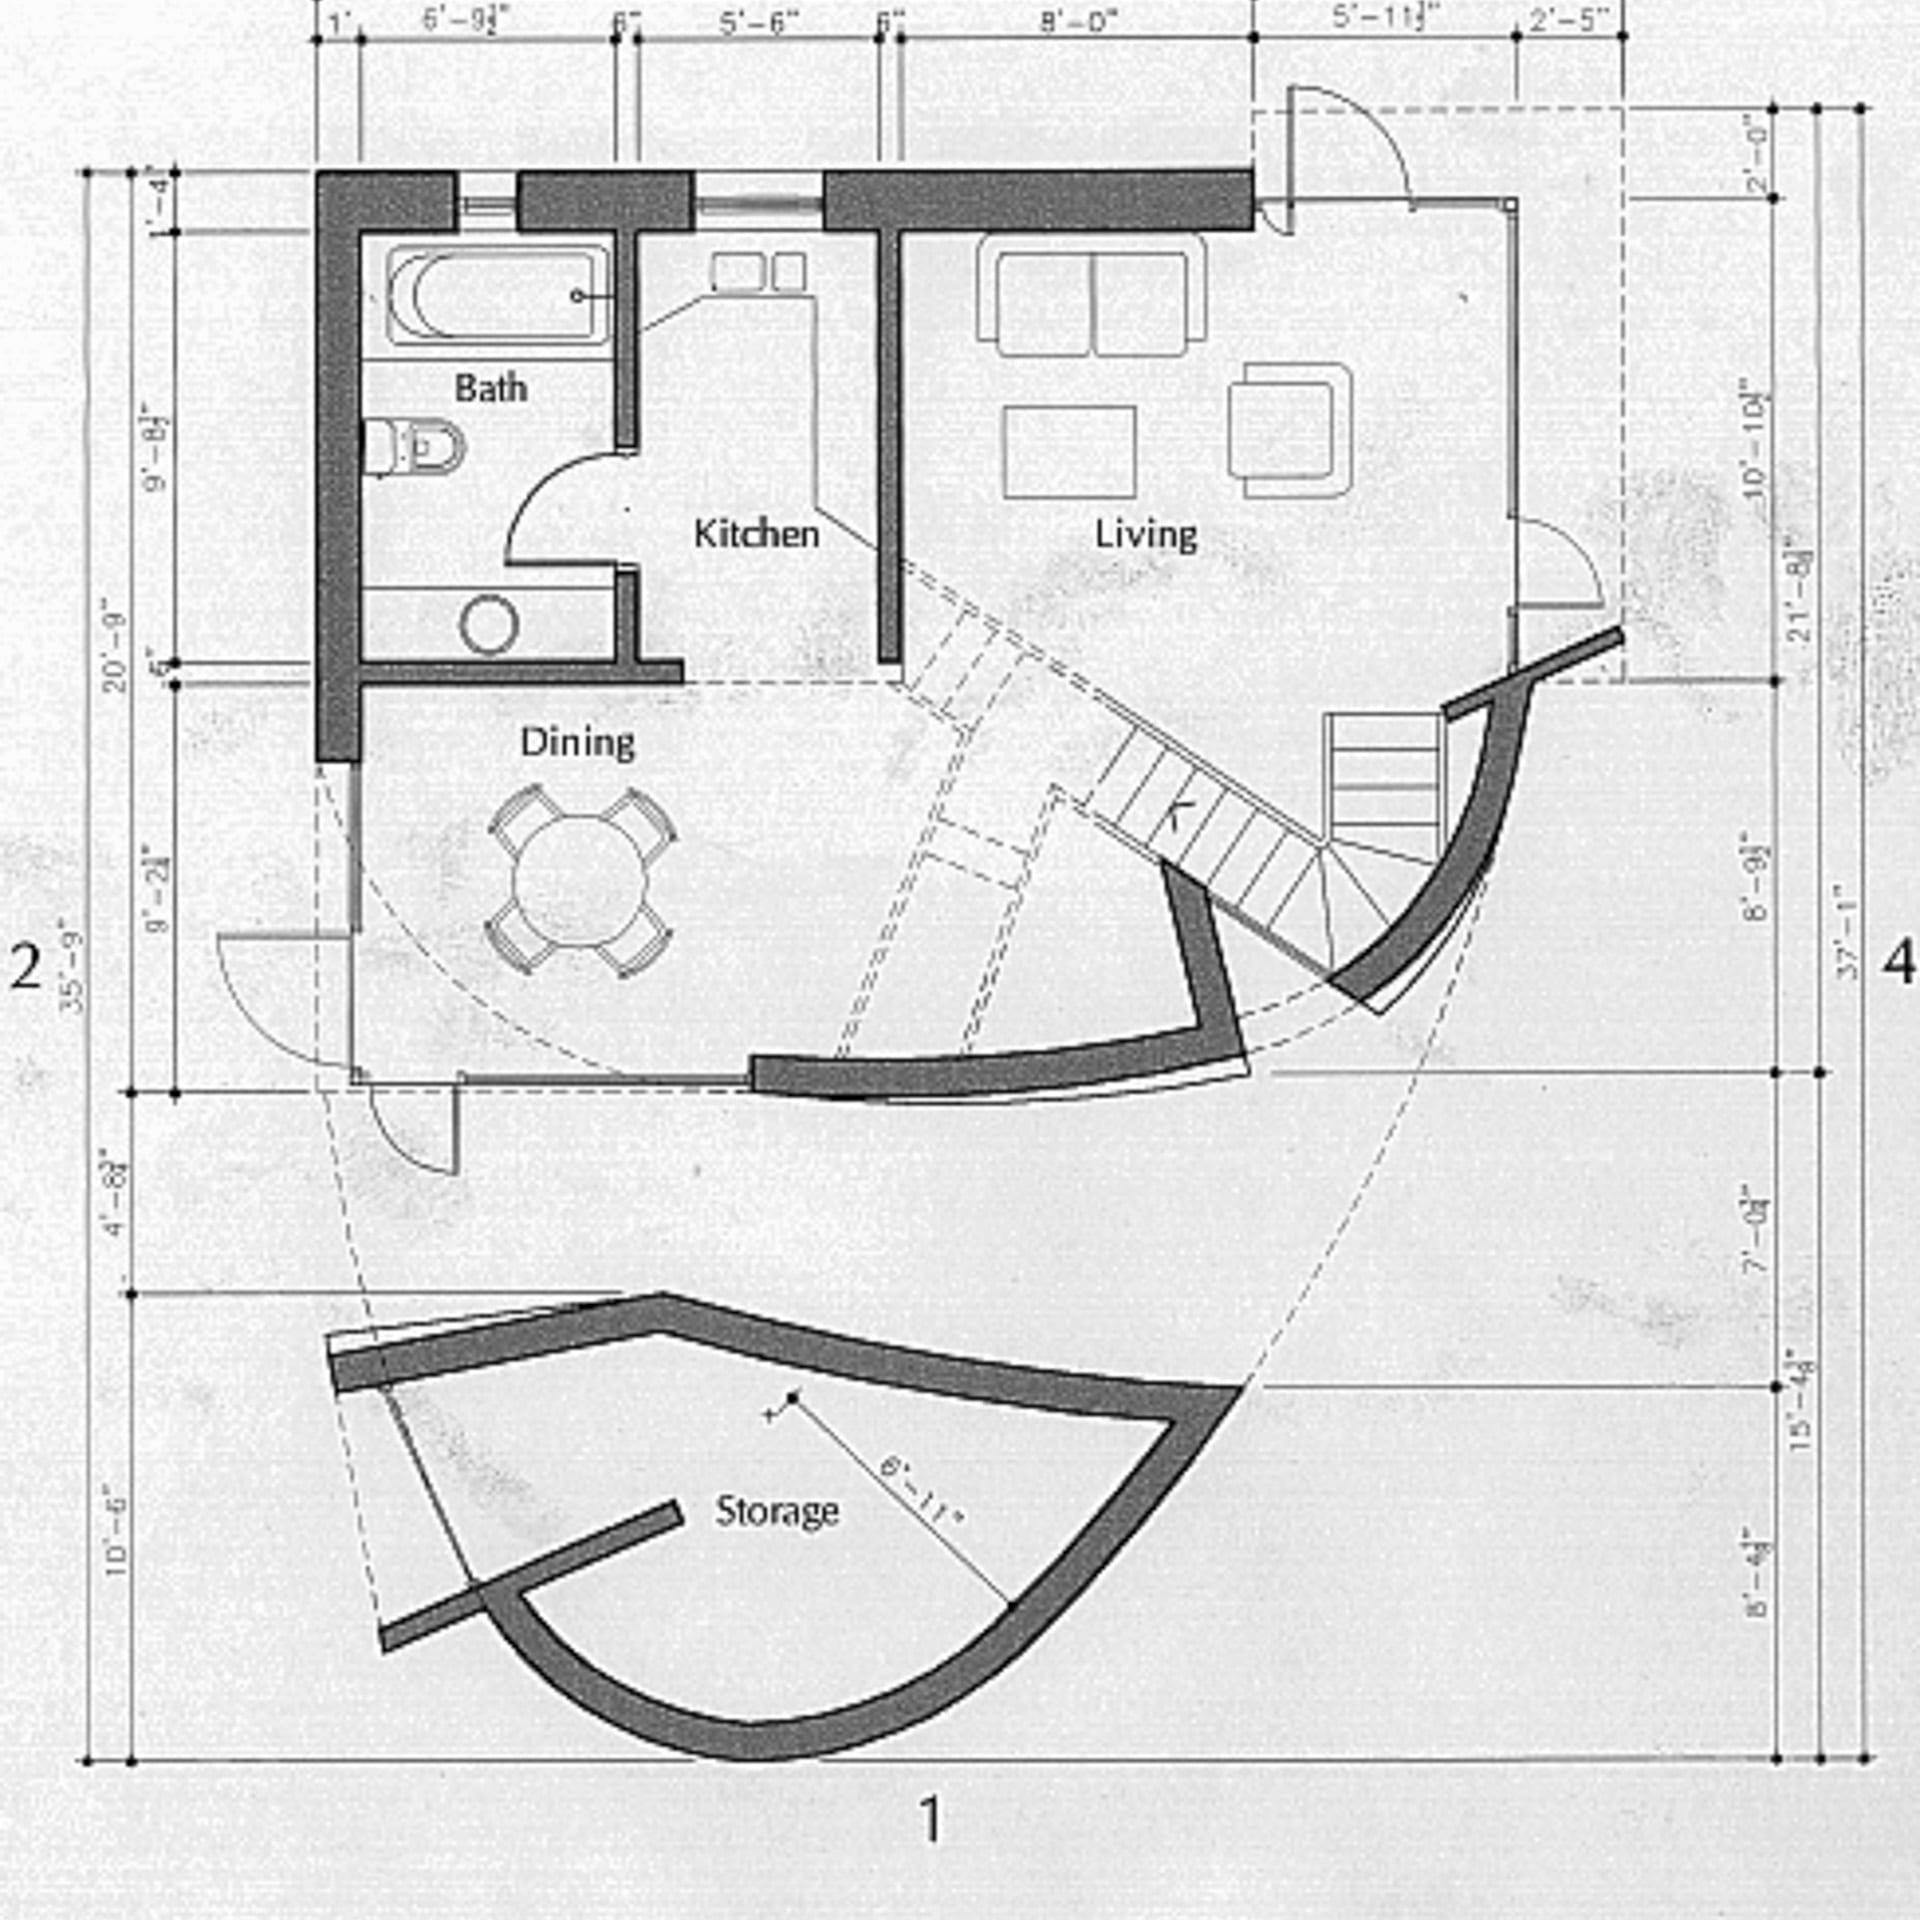 Drawings of the Turbulence House.